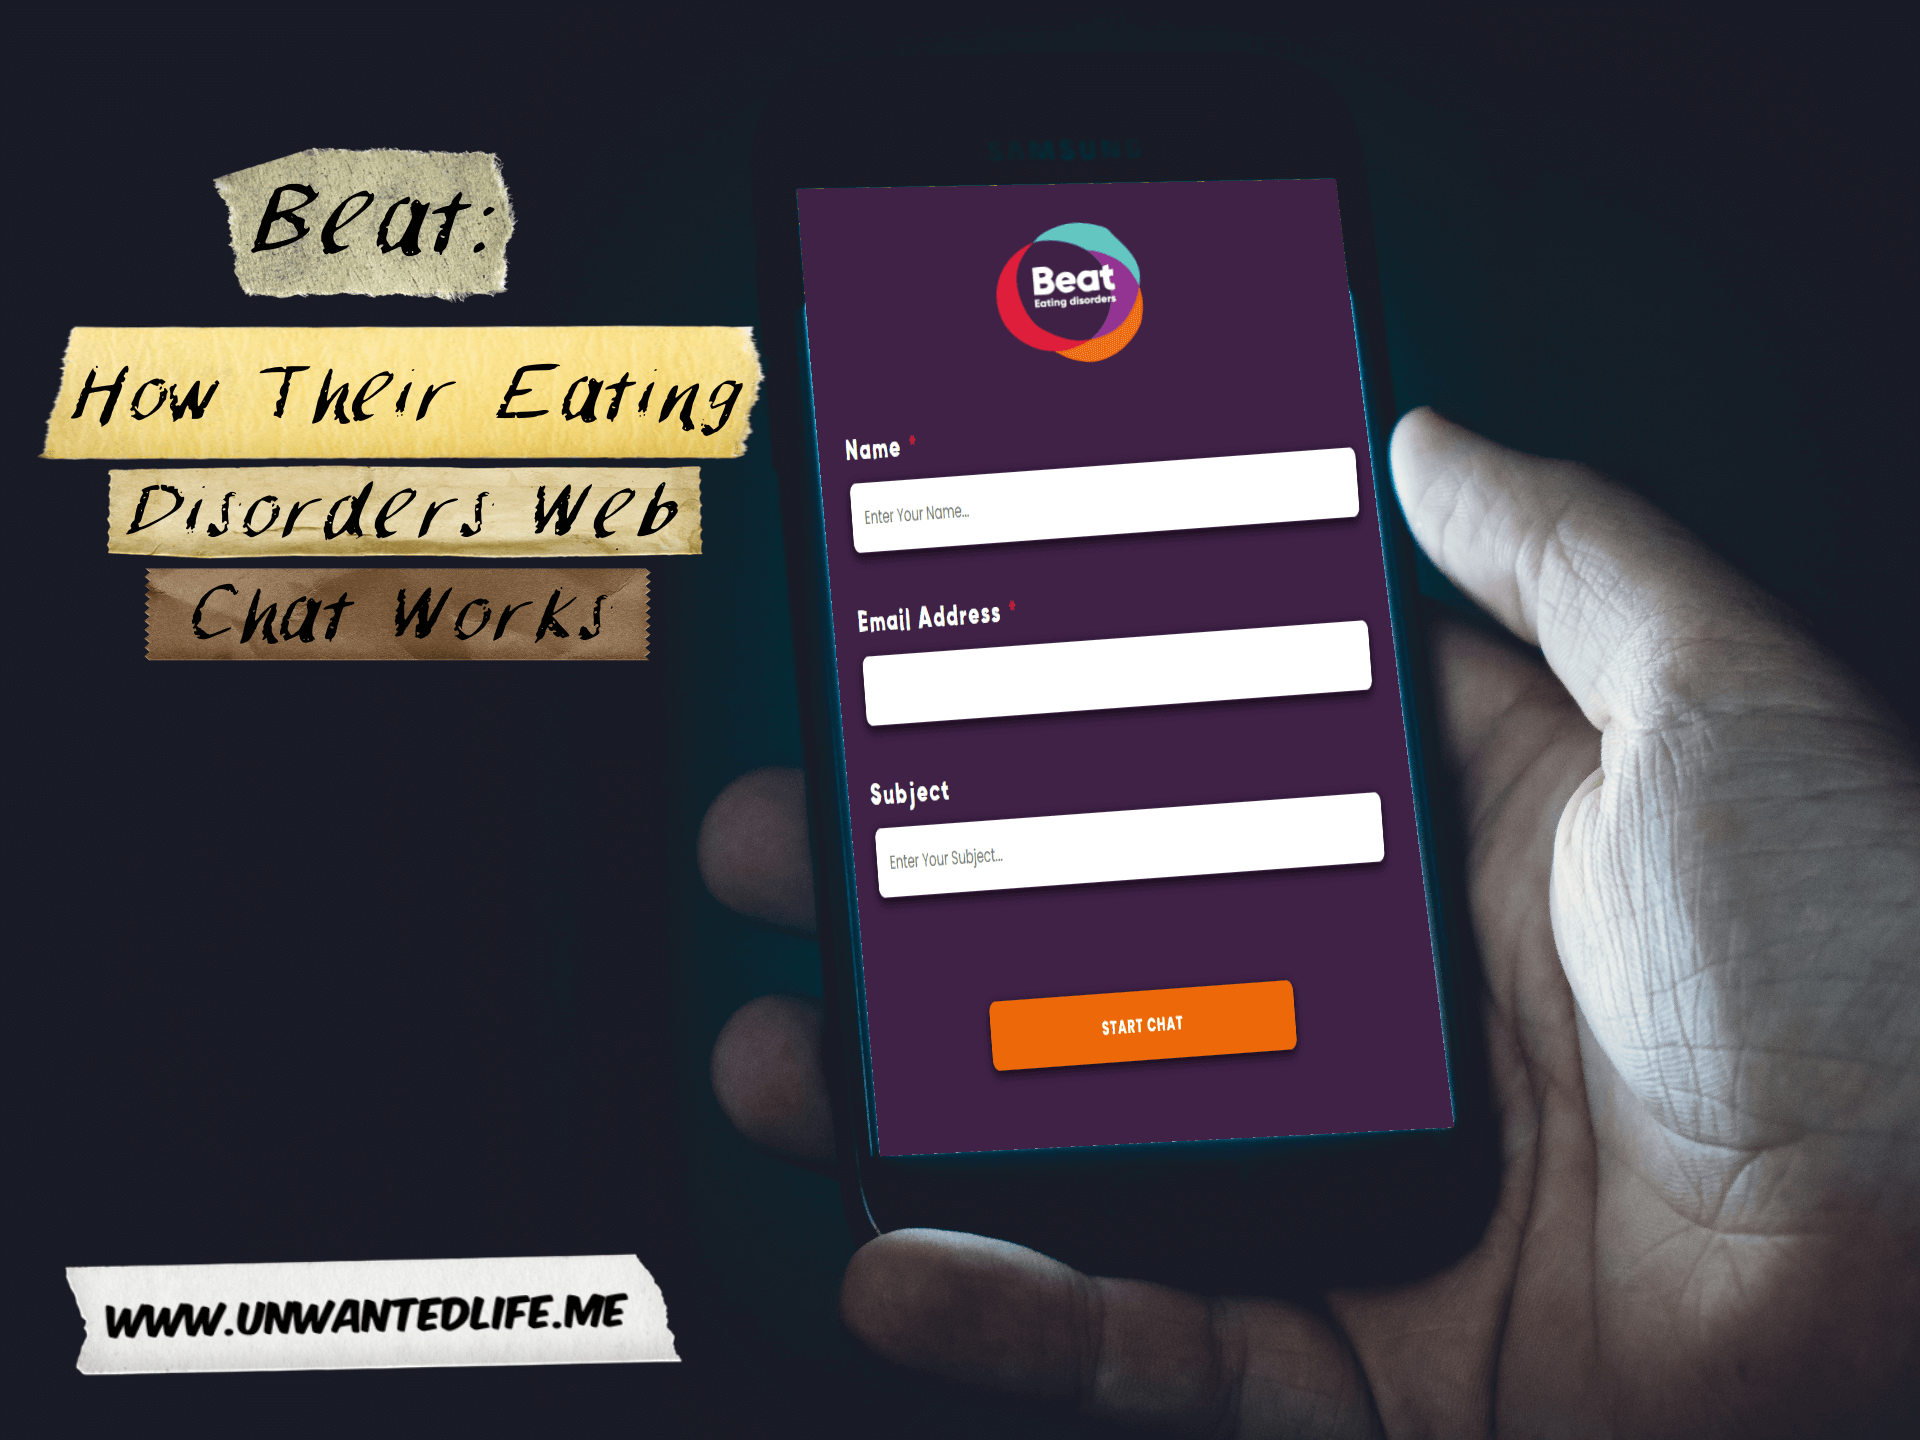 A picture of a white man using his smartphone to access Beat Eating Disorders webchat service represent the topic of the article - Beat: How Their Eating Disorders Web Chat Works